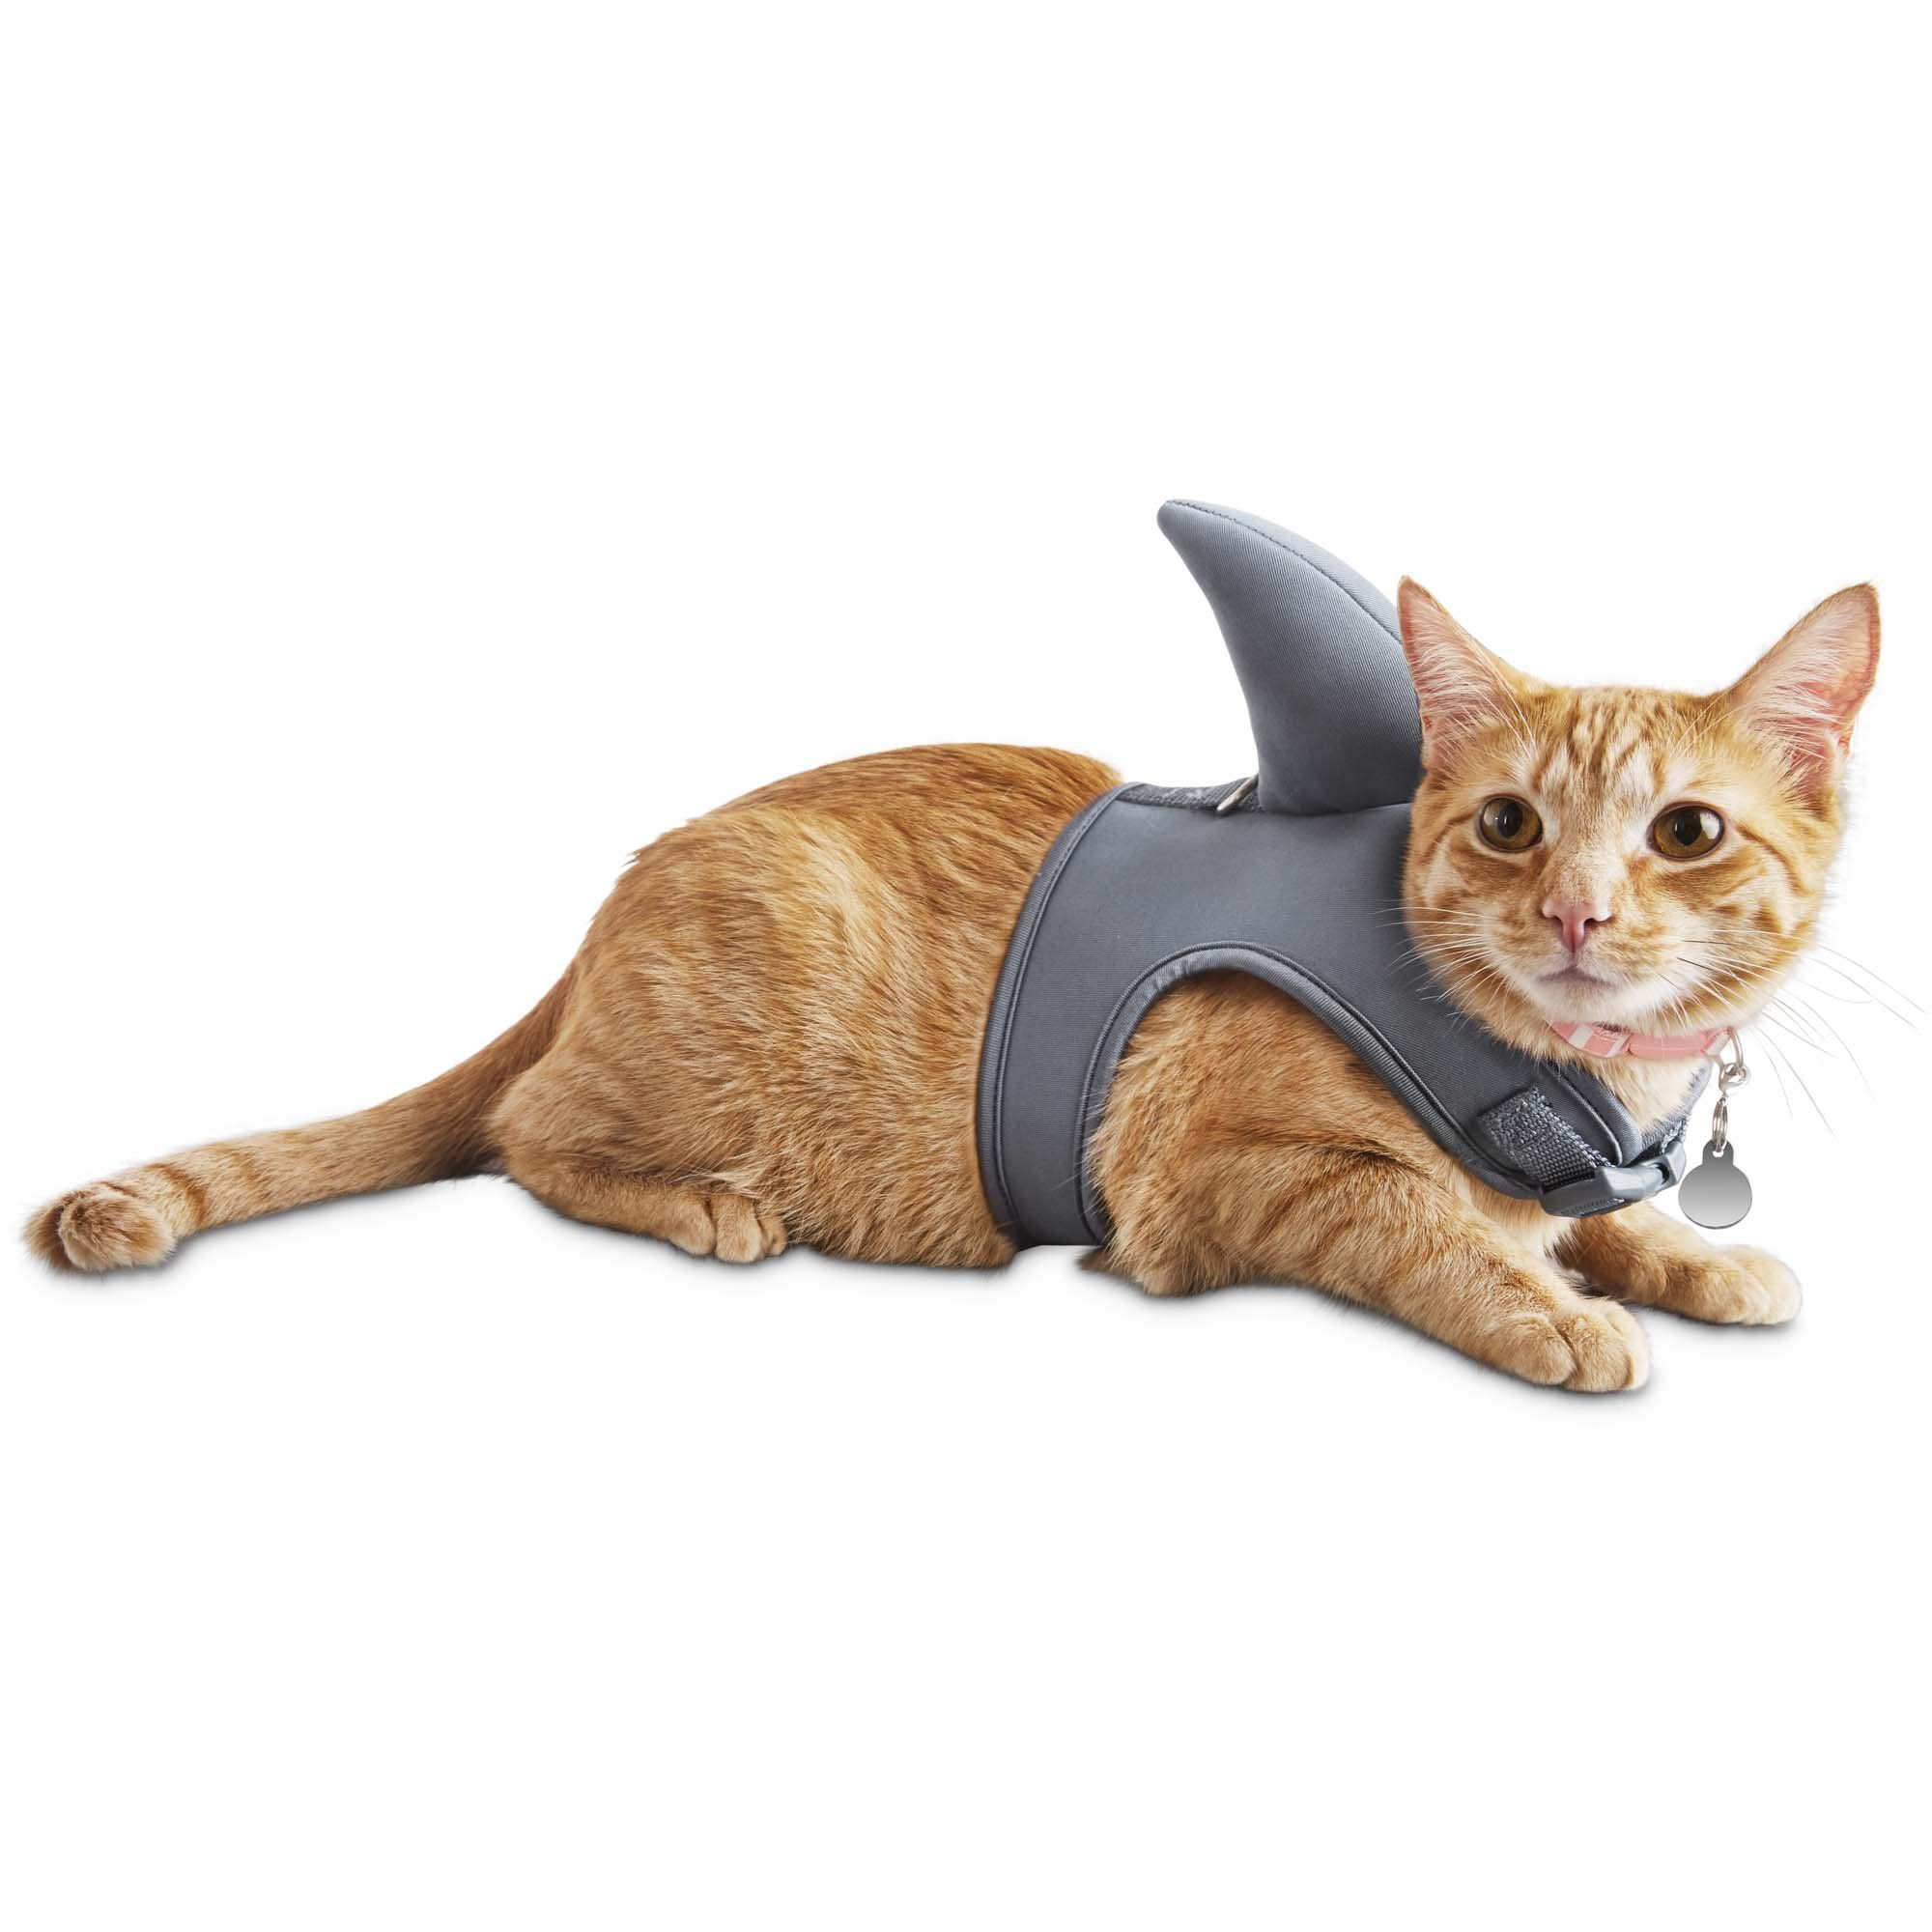 Tag And Lead Your Fierce Kitty With The D Ring On The Seaside Summer Shark Cat Harness A Buckle Snap And Adjustable Velcro Closures Cat Harness Kittens Doggy